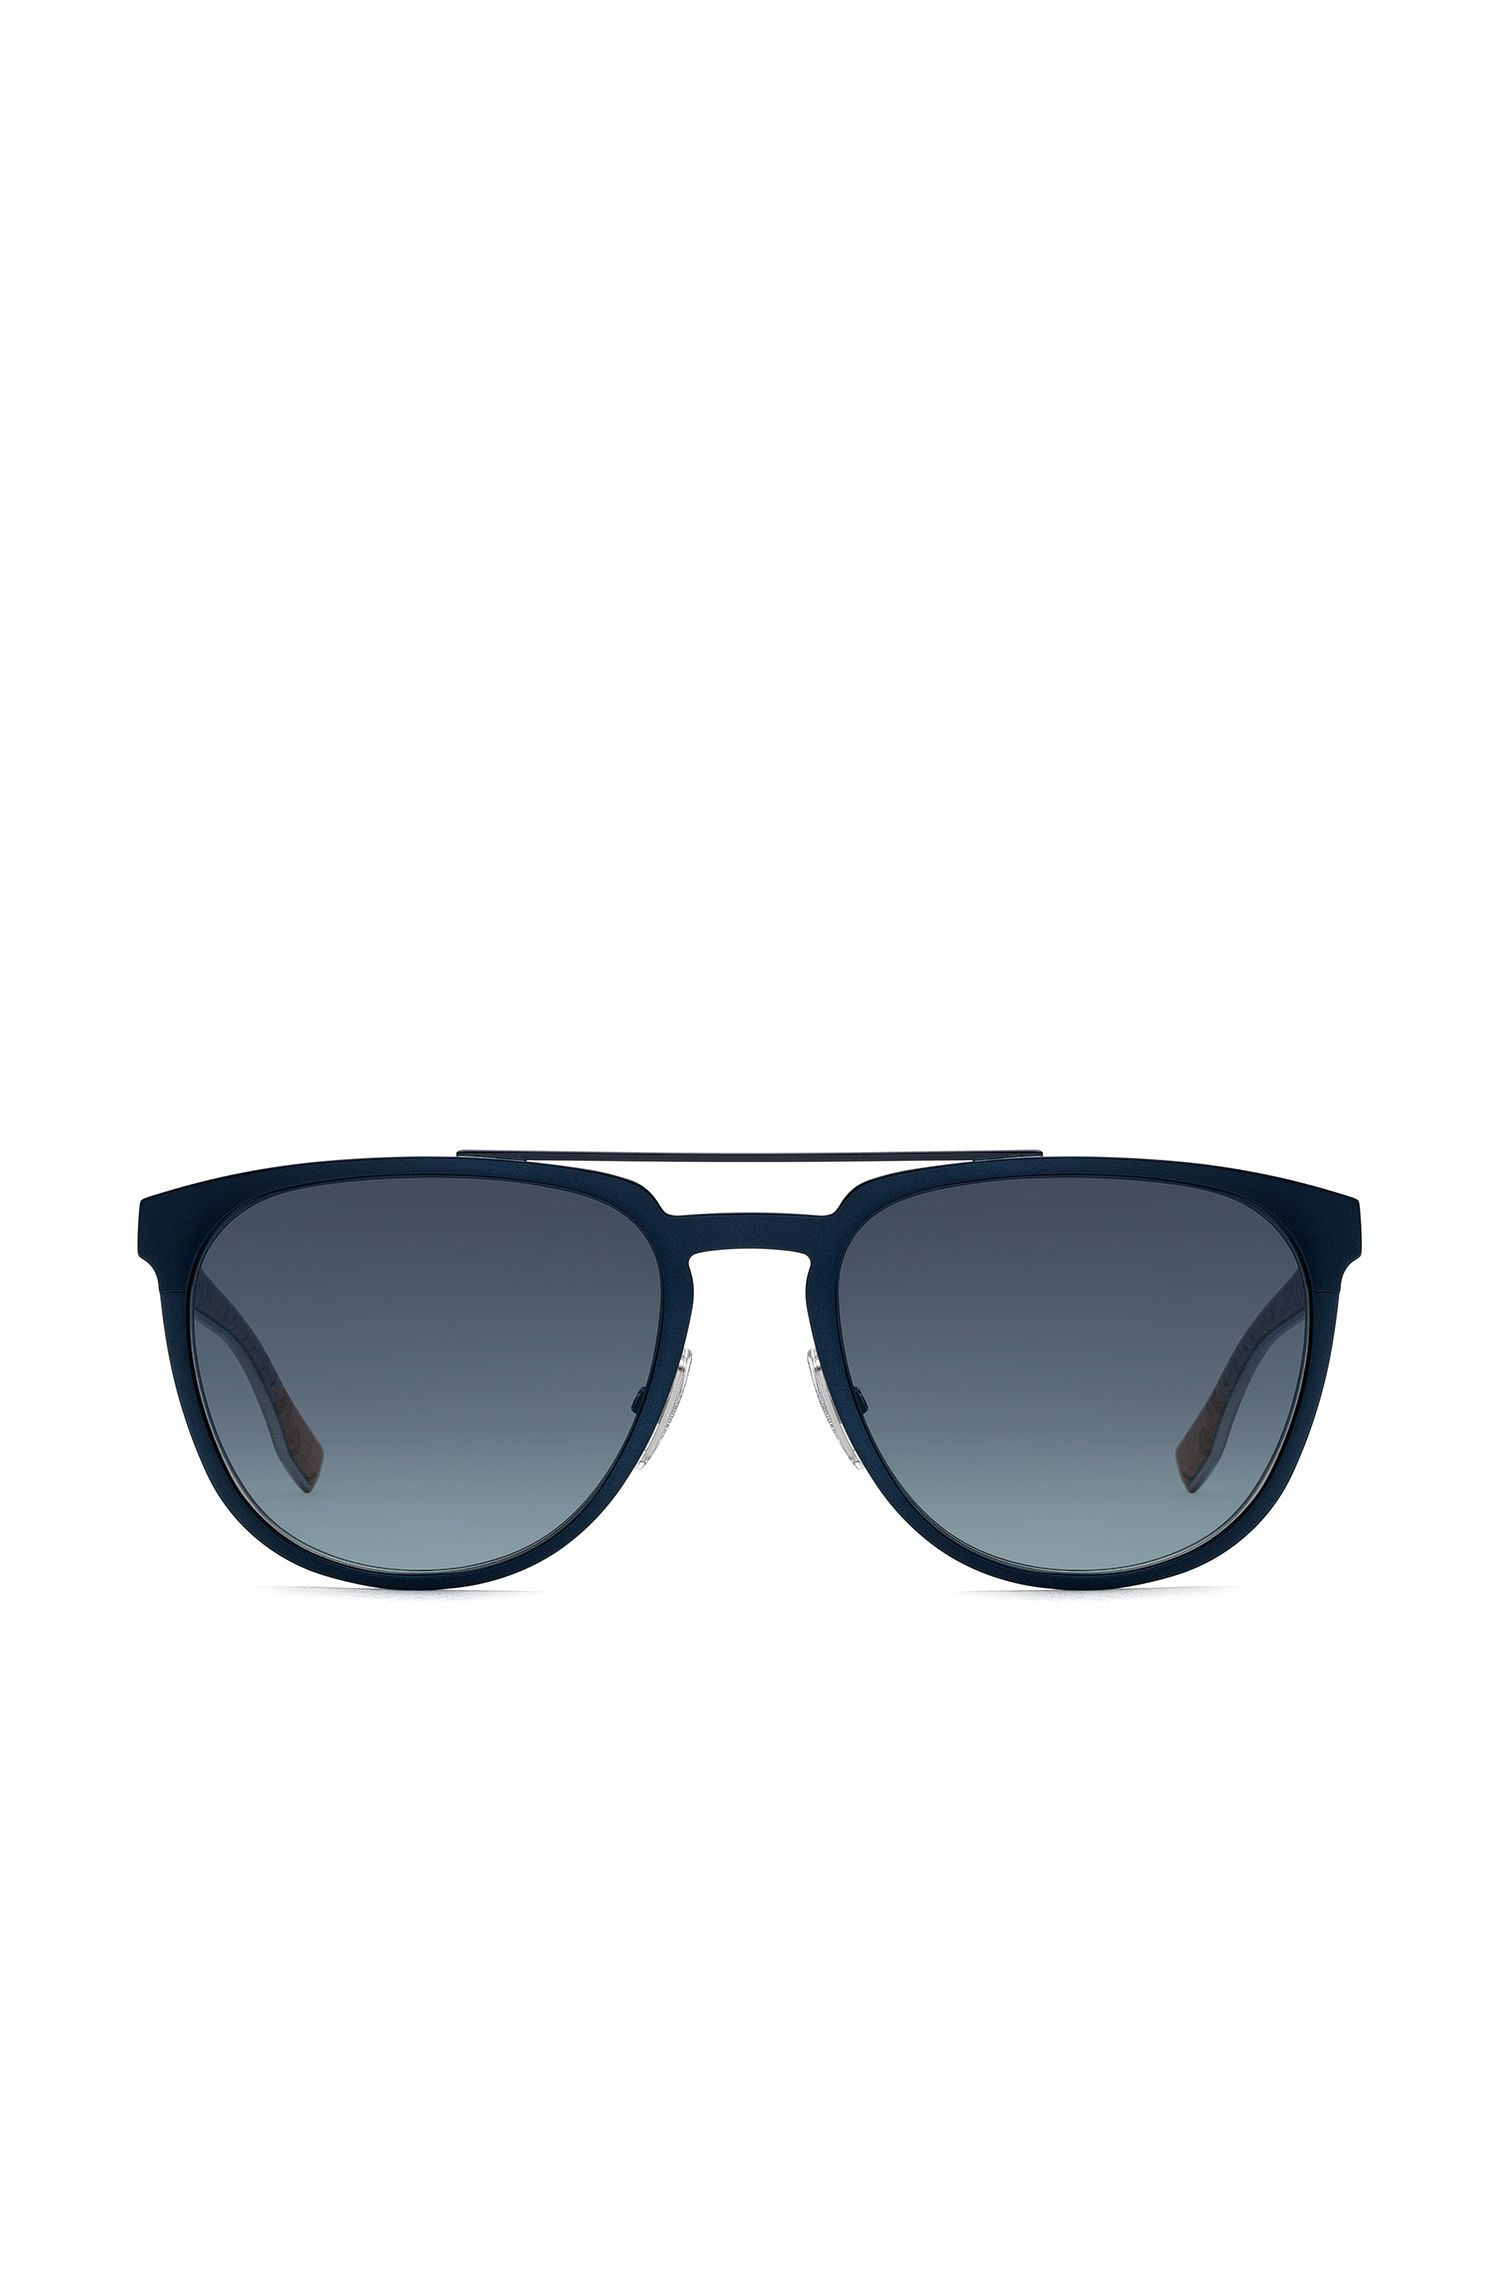 Aviator sunglasses with thin blue metallic frames